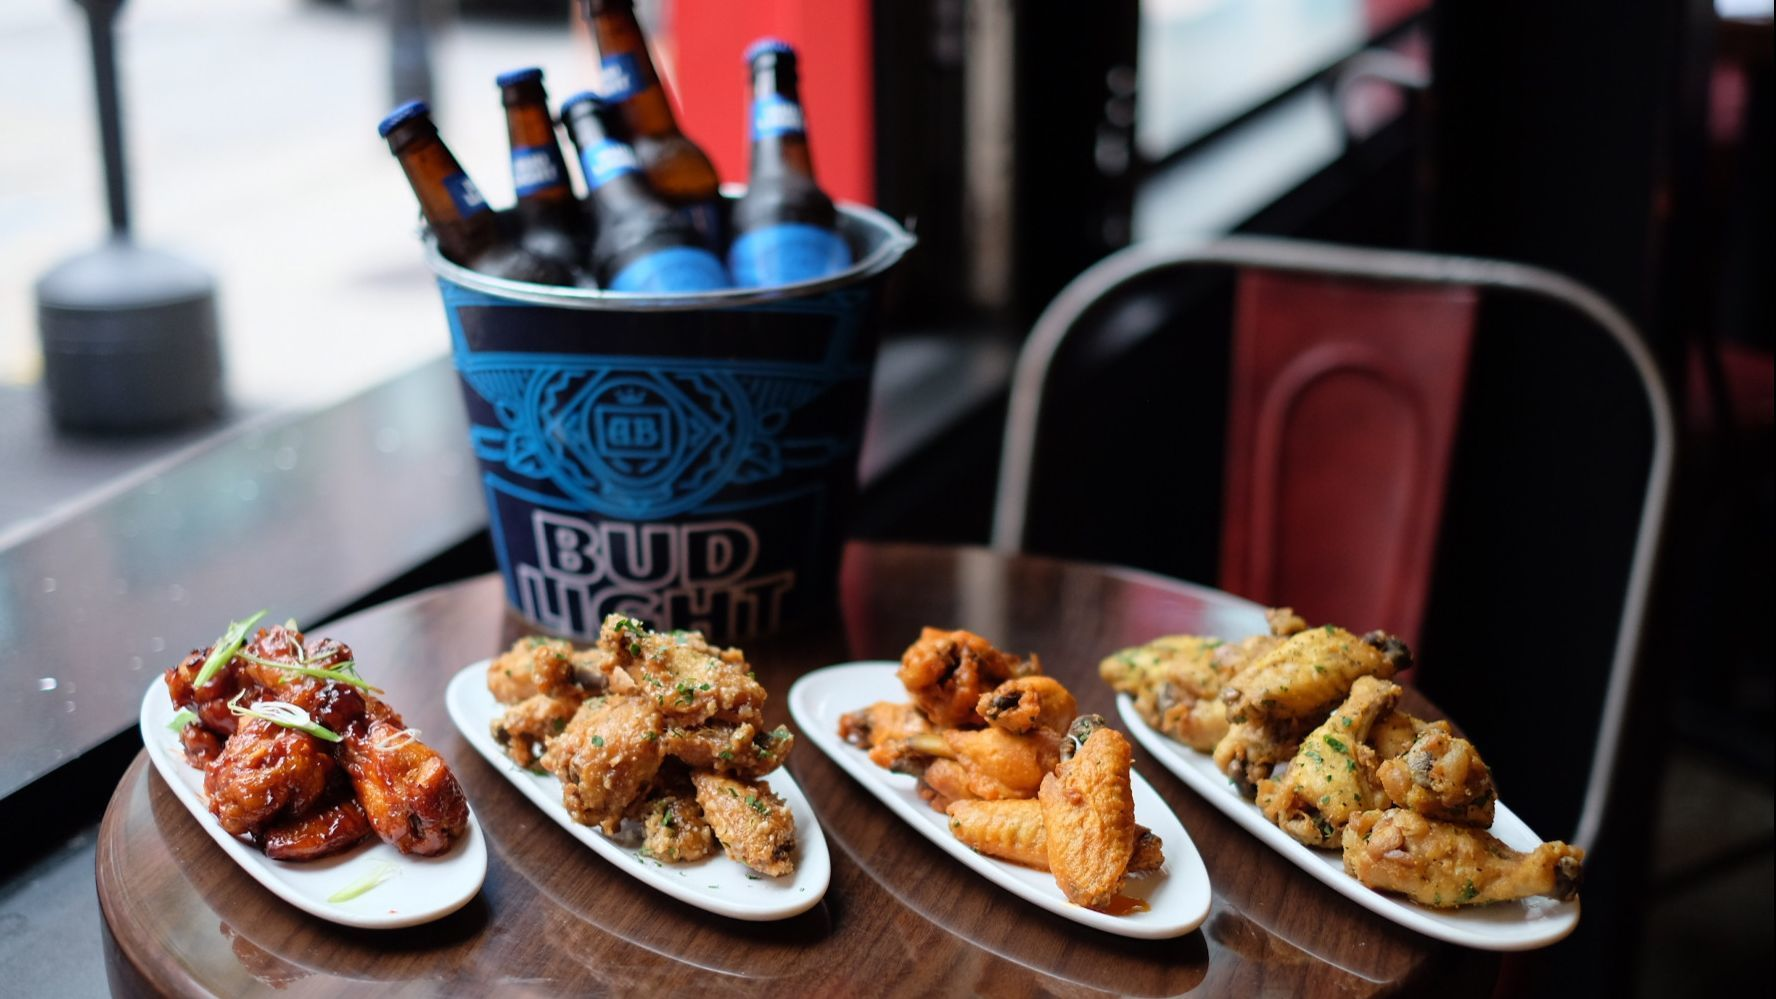 17 March Madness bar specials in Chicago